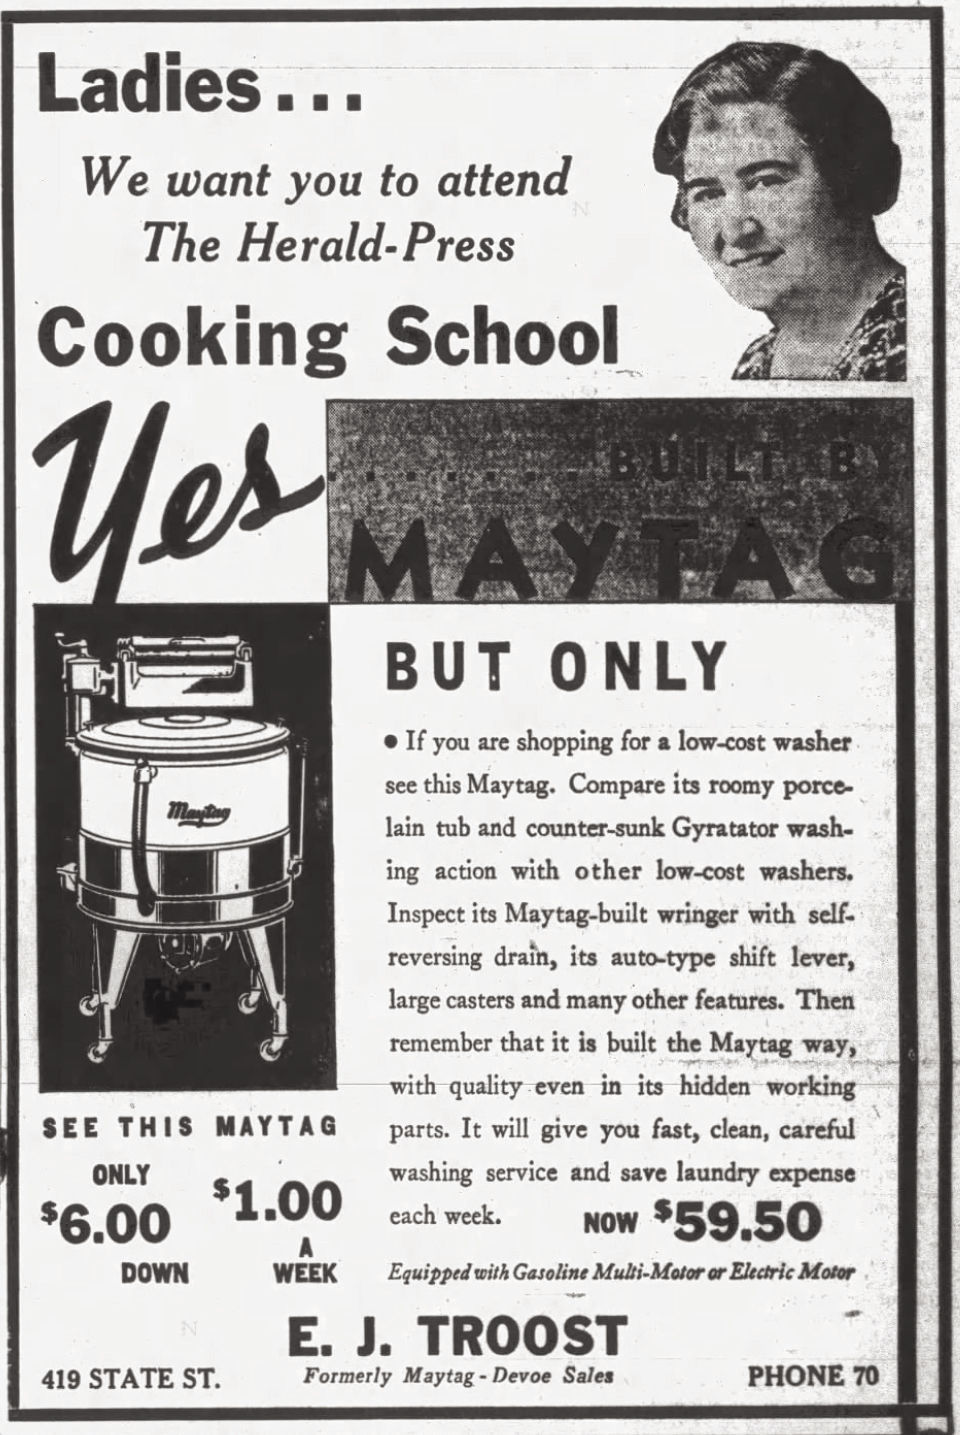 Maytag cooking school